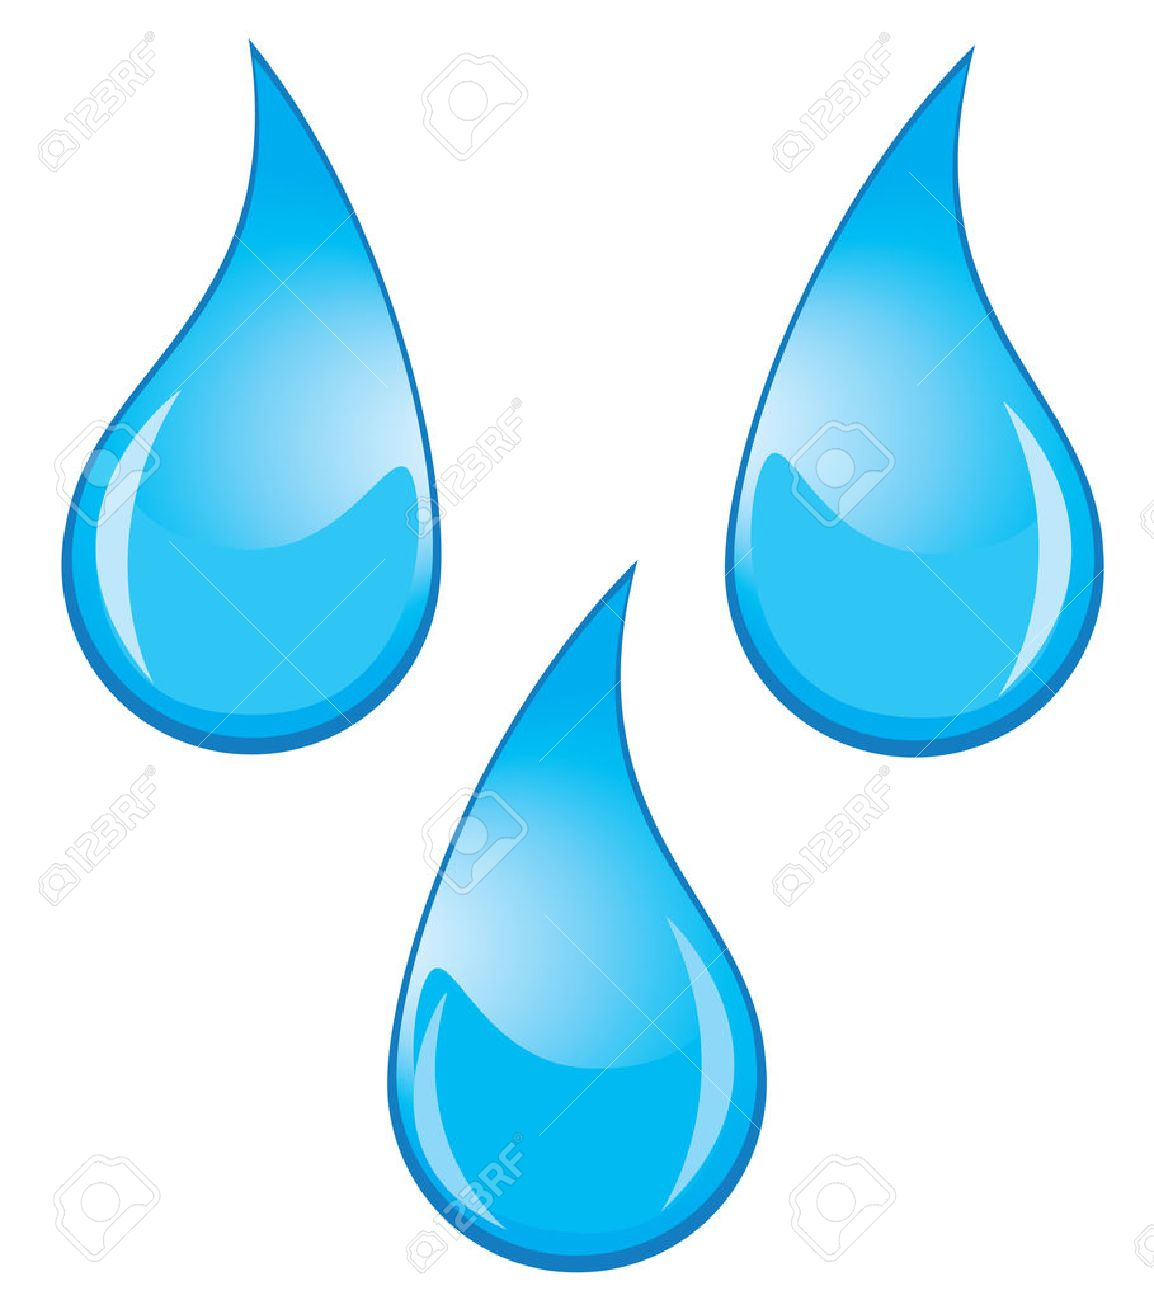 vector water drops royalty free cliparts vectors and stock rh 123rf com free vector water drop download vector water drops in adobe illustrator